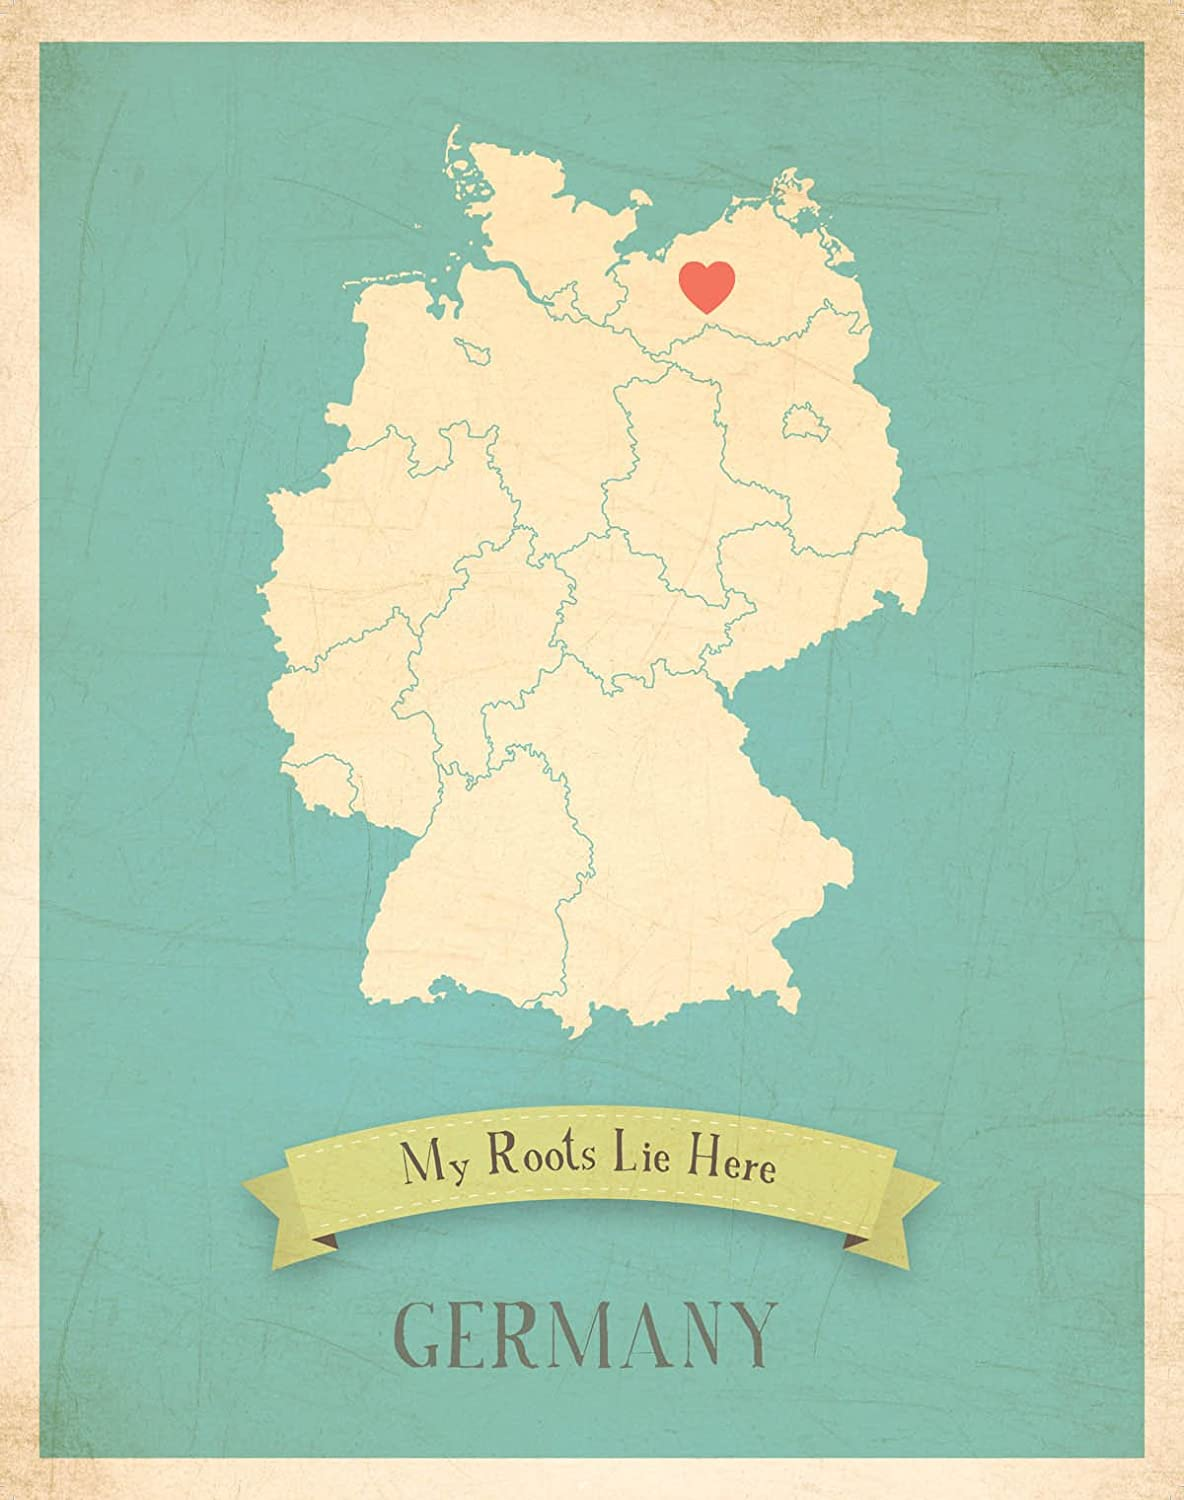 Amazon.com: Kid's Wall Map, My Roots Germany Personalized ... on germany country map, berlin germany map, germany map with cities, germany world atlas, germany political map, germany on us map, germany map wallpaper, germany wall clock, germany wall city, germany globe, germany road map, germany travel map, germany garden, germany europe map, germany wall paper, germany world map, germany berlin wall, germany located on map, germany rail map, germany kit,